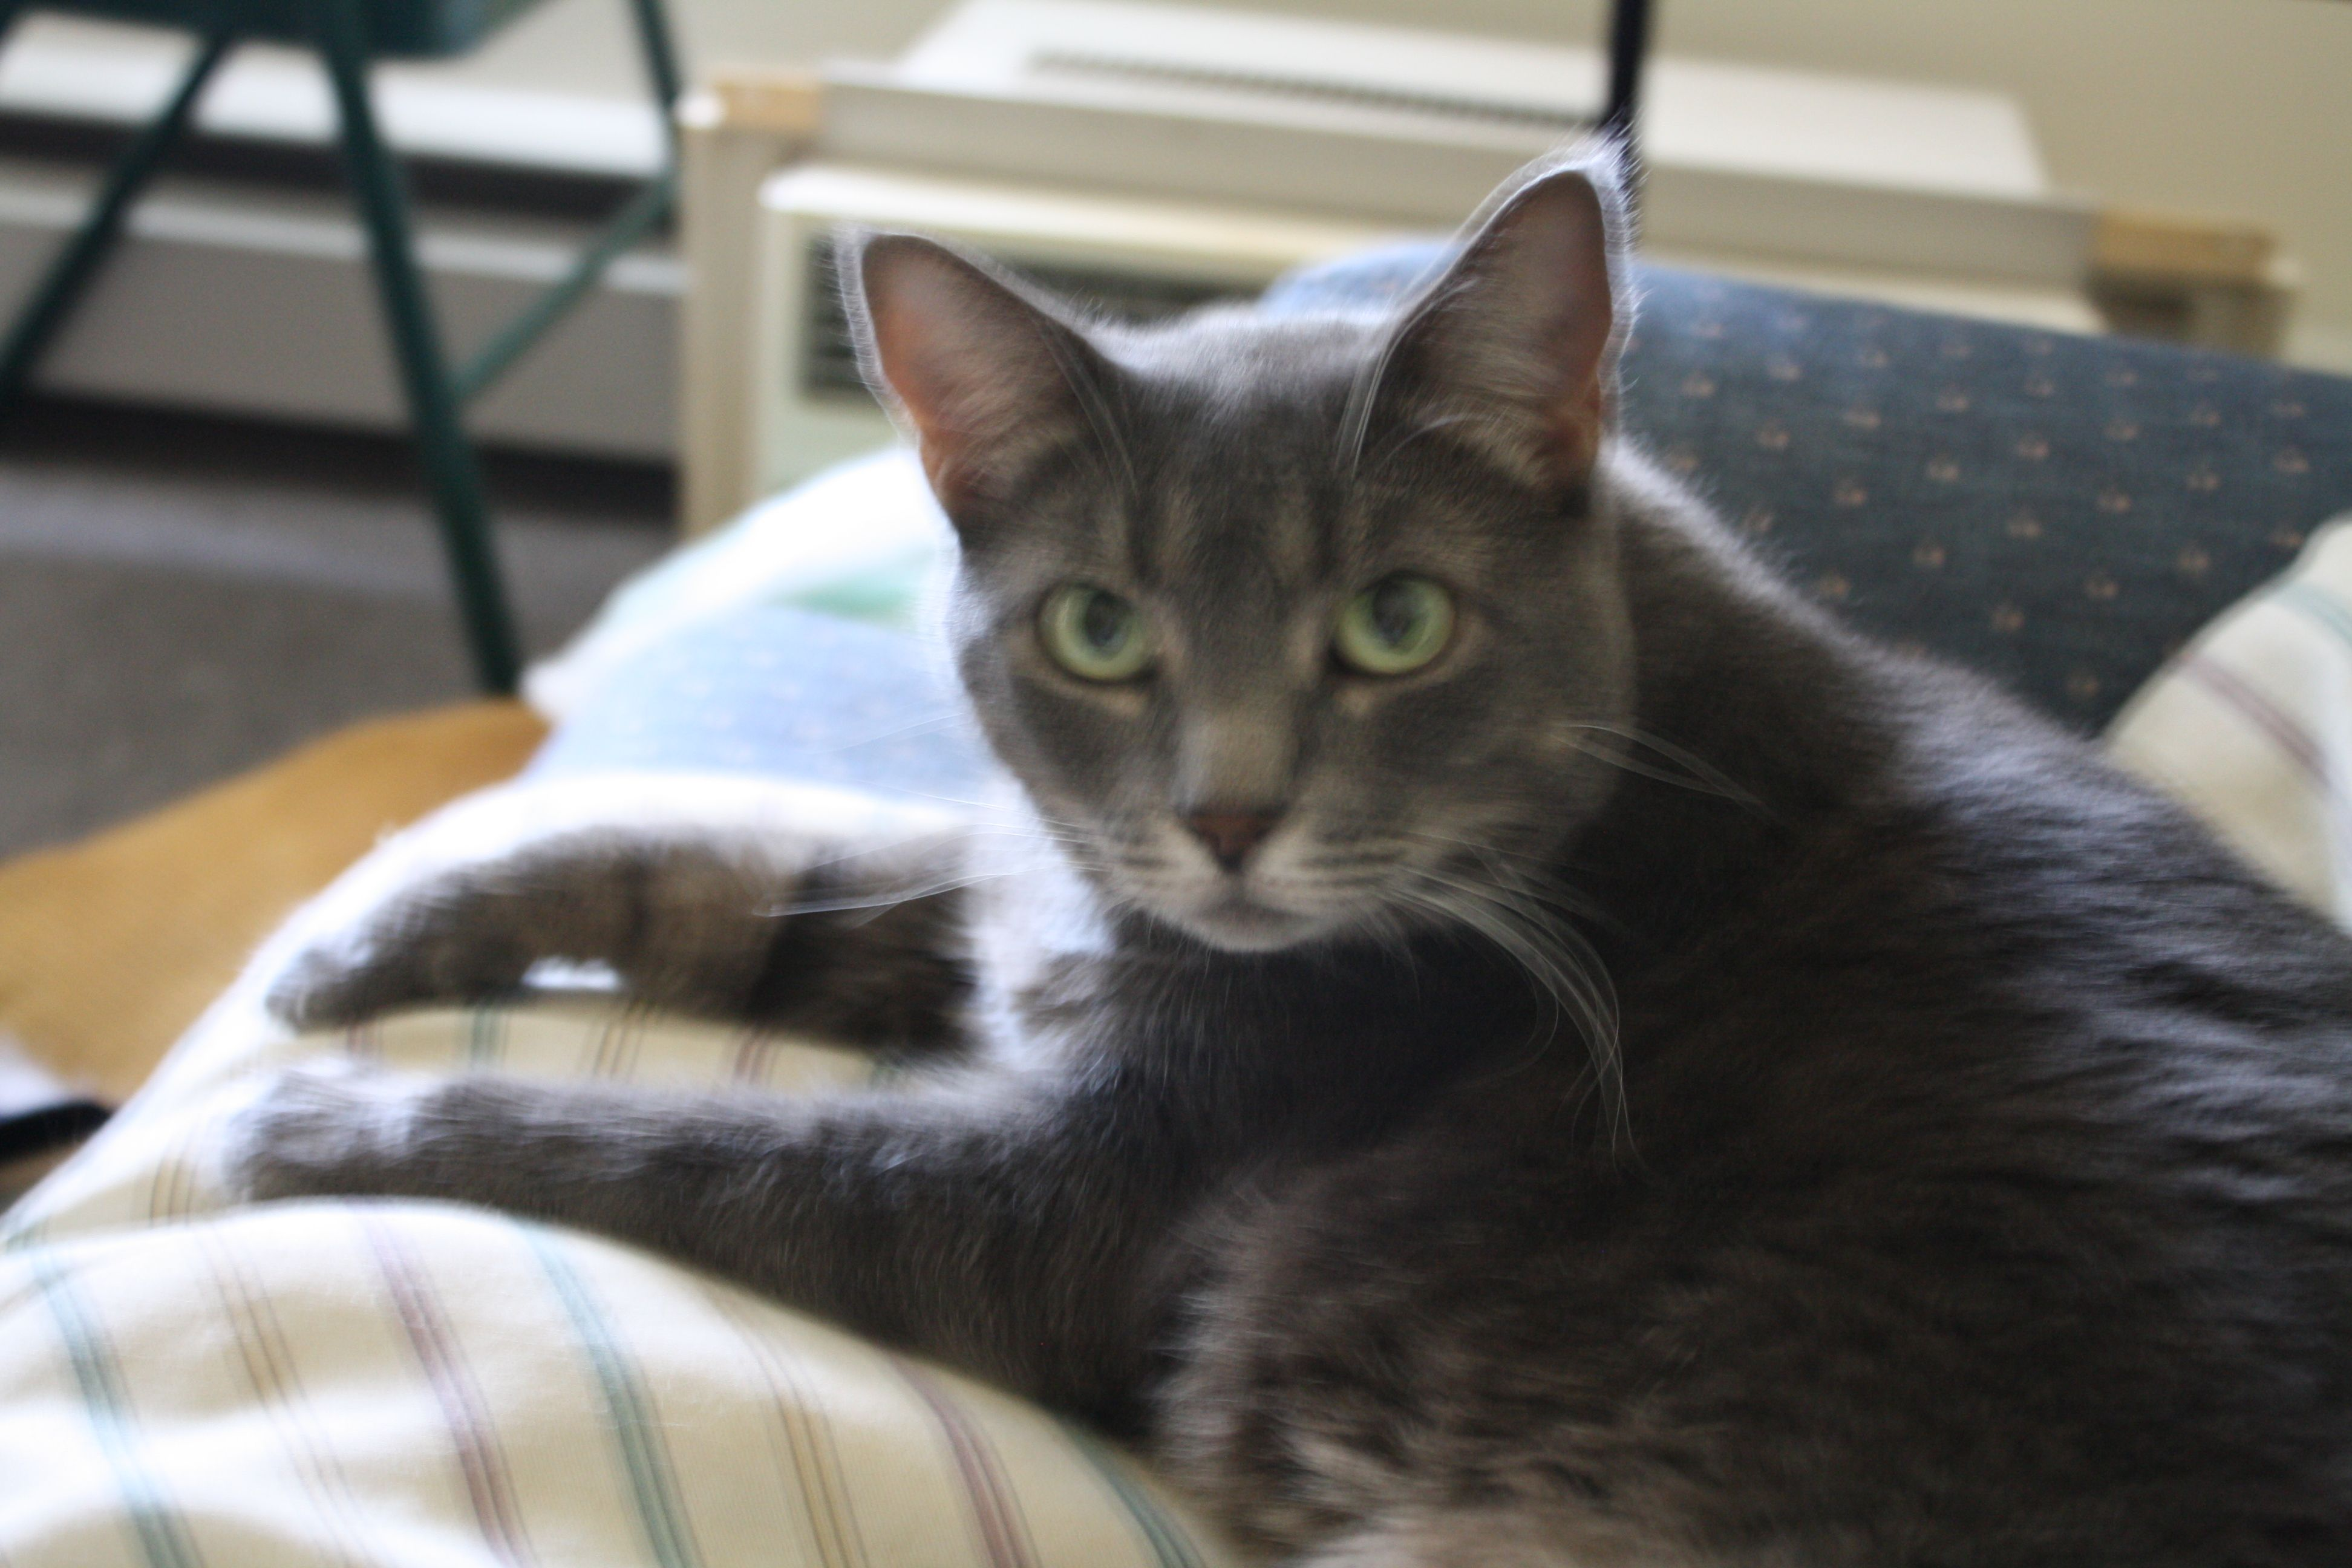 This is my cat Mazee. She is the best companion. But she loves to talk.